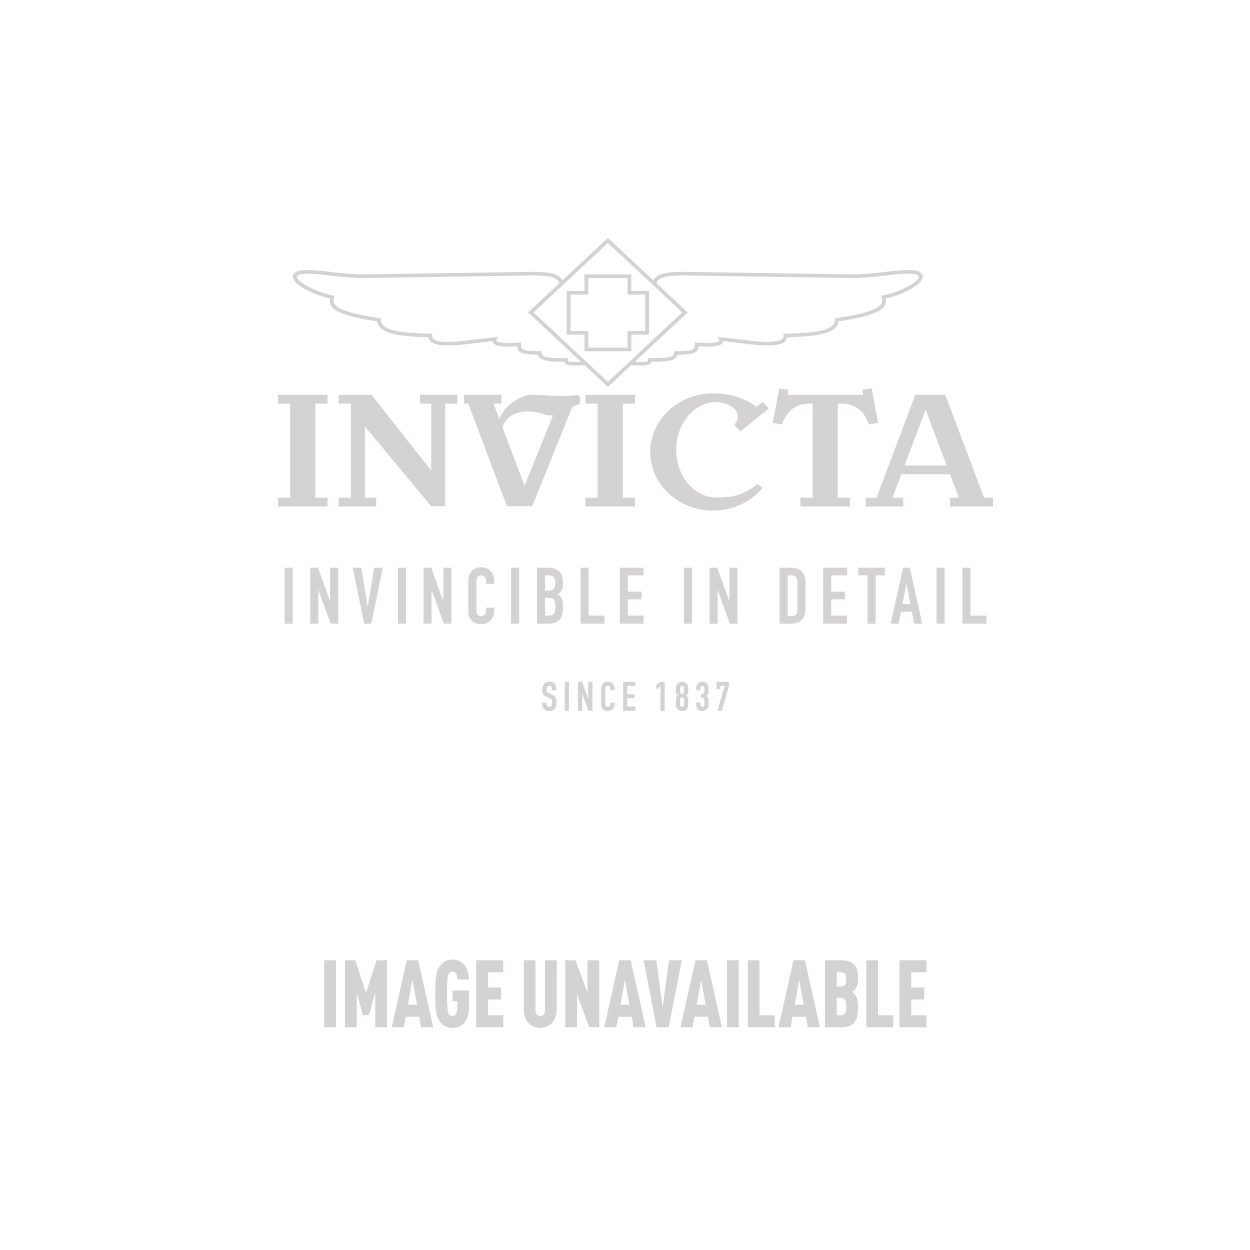 Invicta Angel Swiss Movement Quartz Watch - Stainless Steel case Stainless Steel band - Model 0463